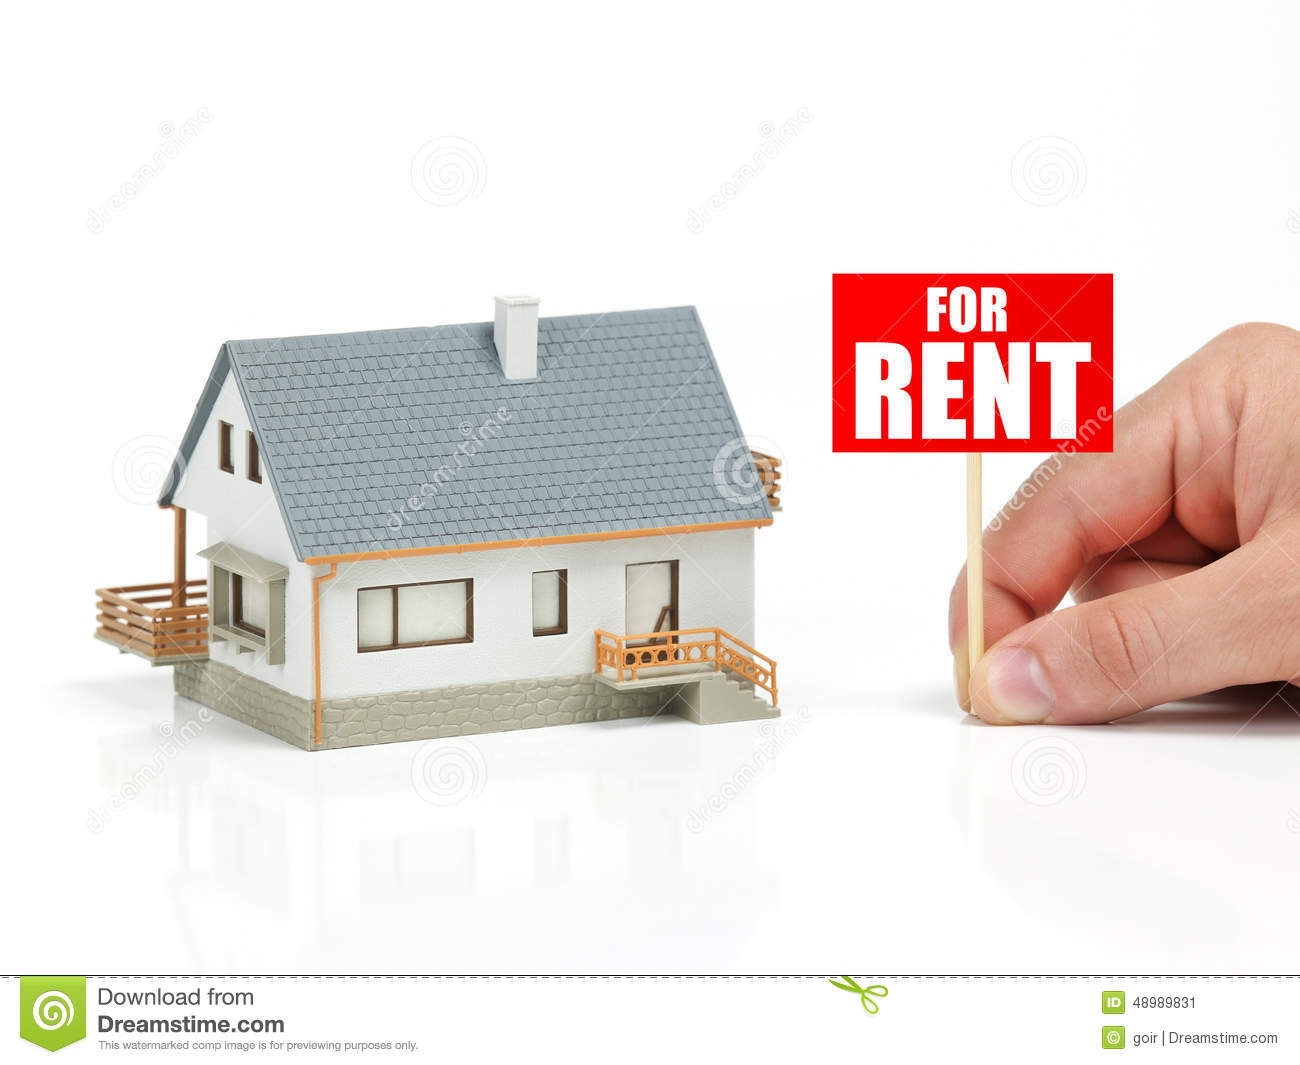 house for rent clipart - photo #47